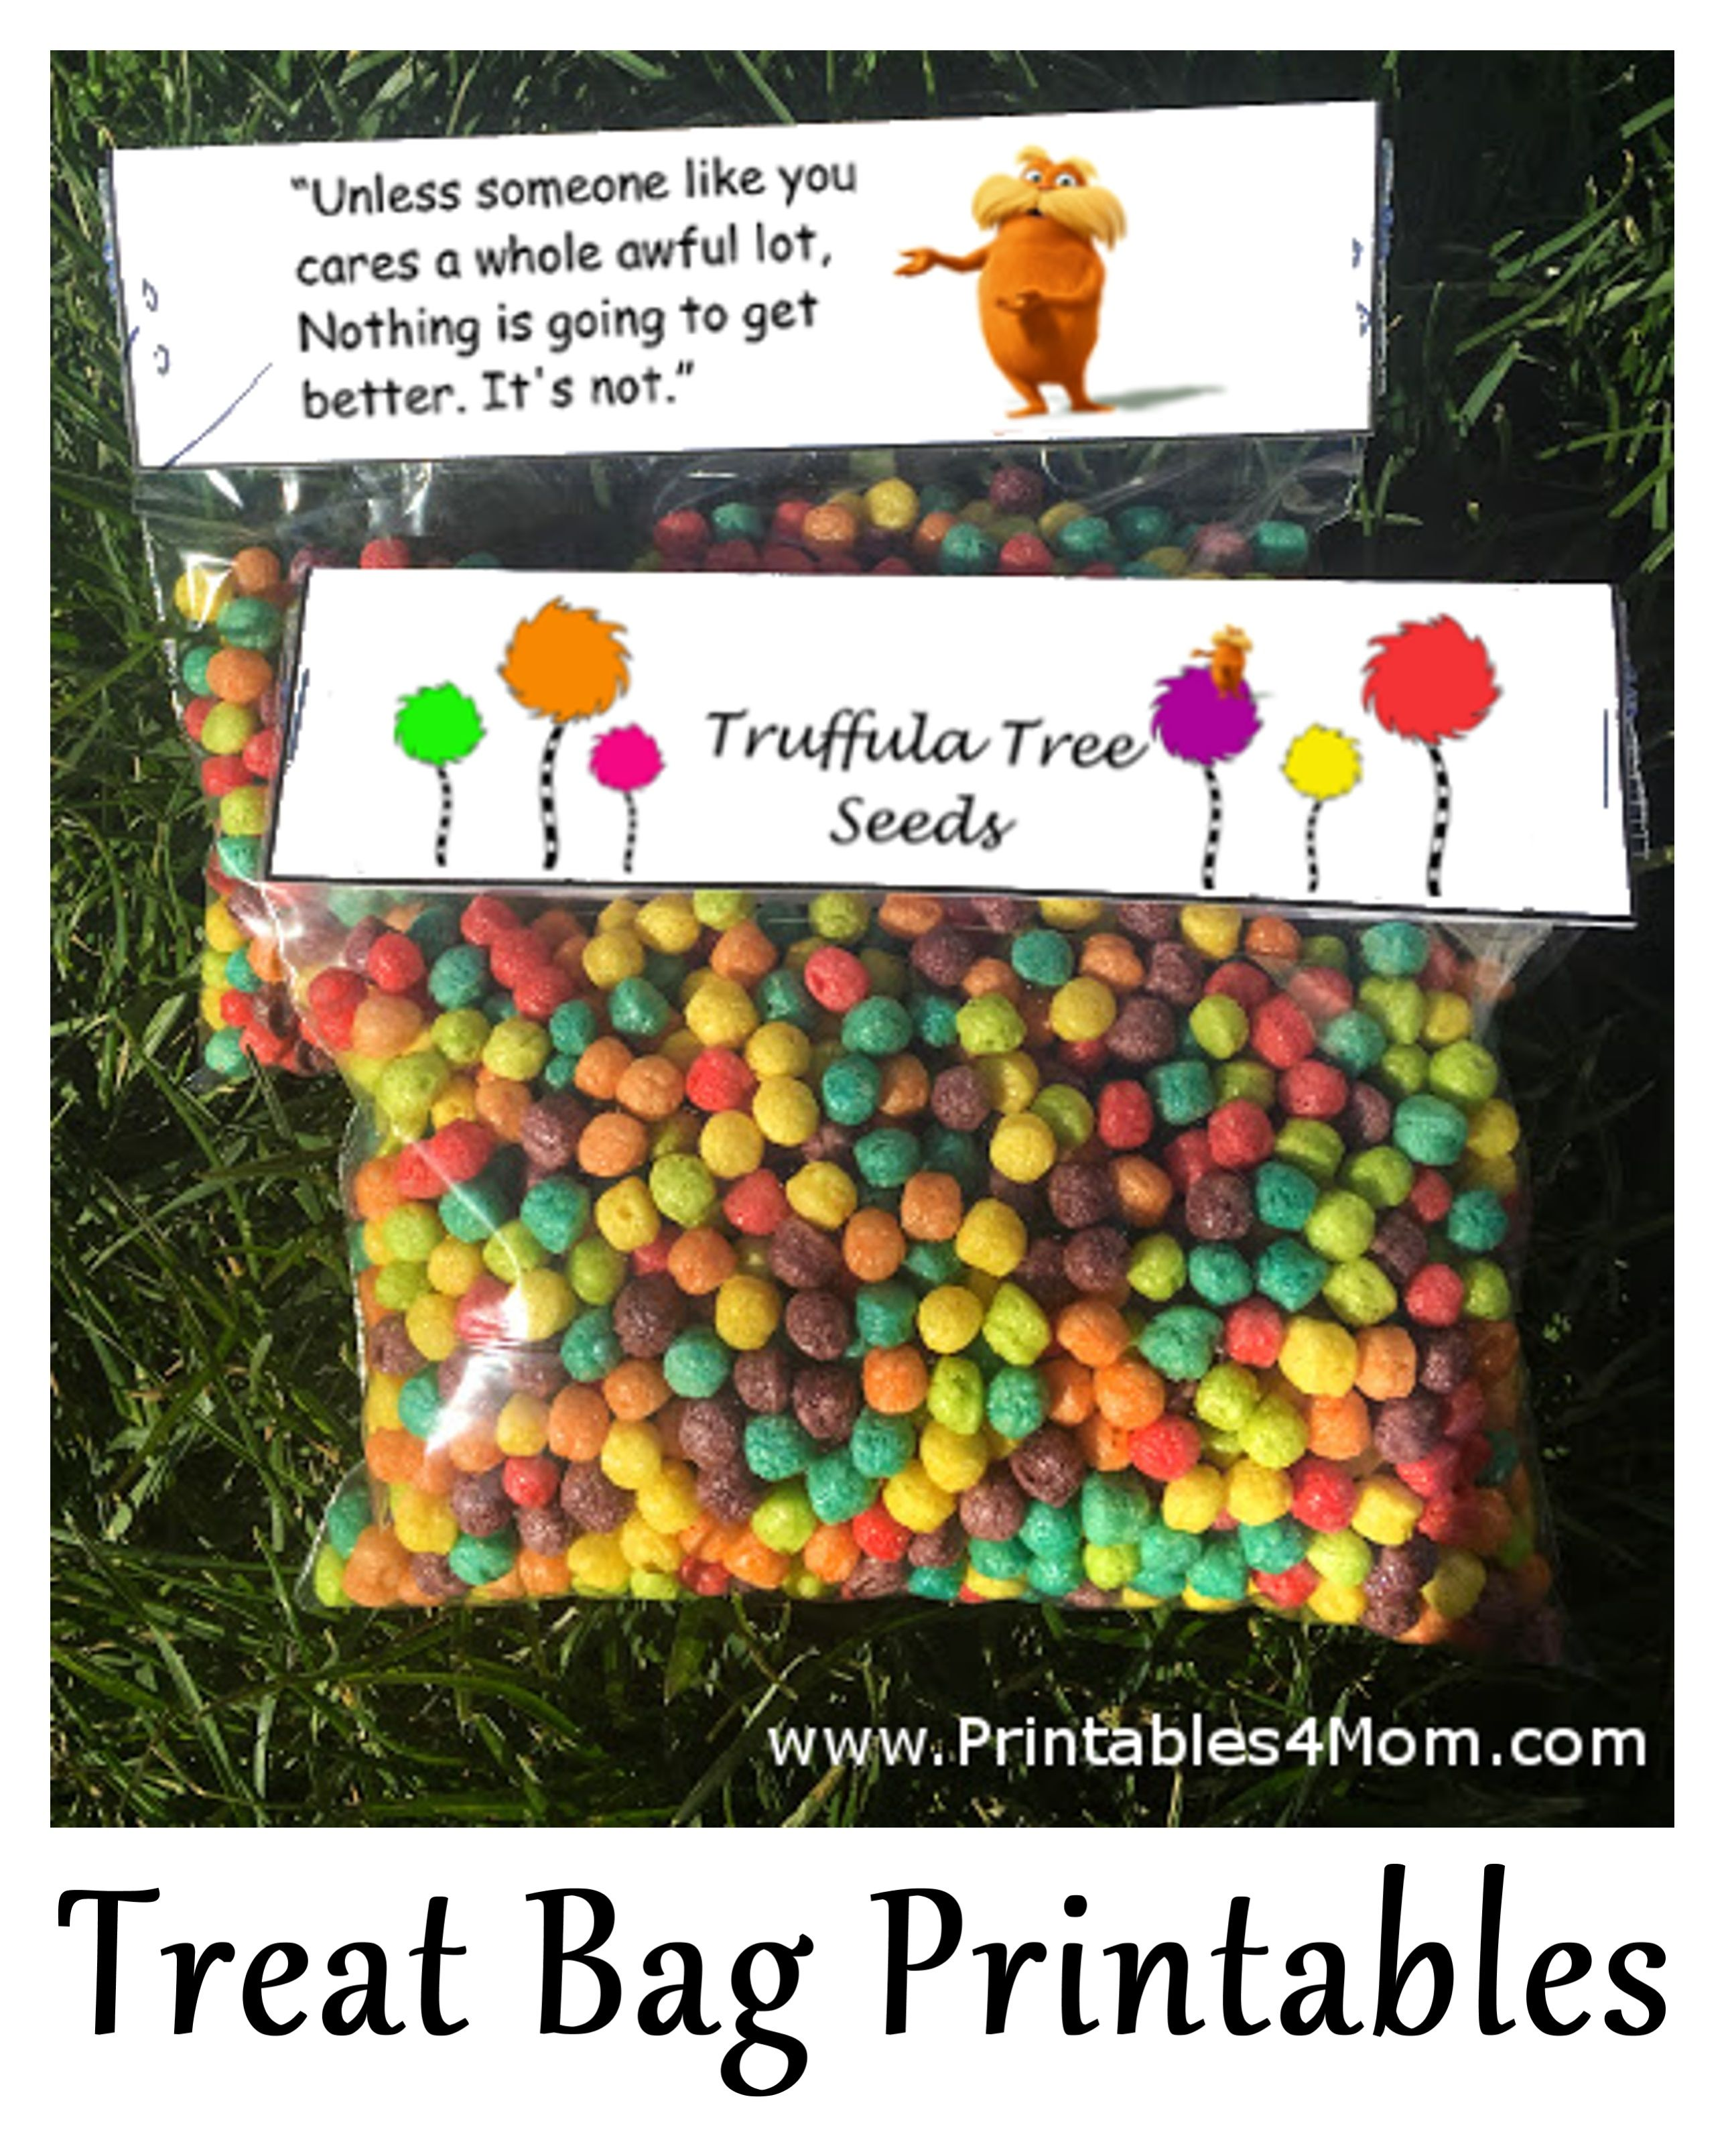 picture about Truffula Seeds Printable titled Truffula Tree Seeds Printable Toppers Printables4mother